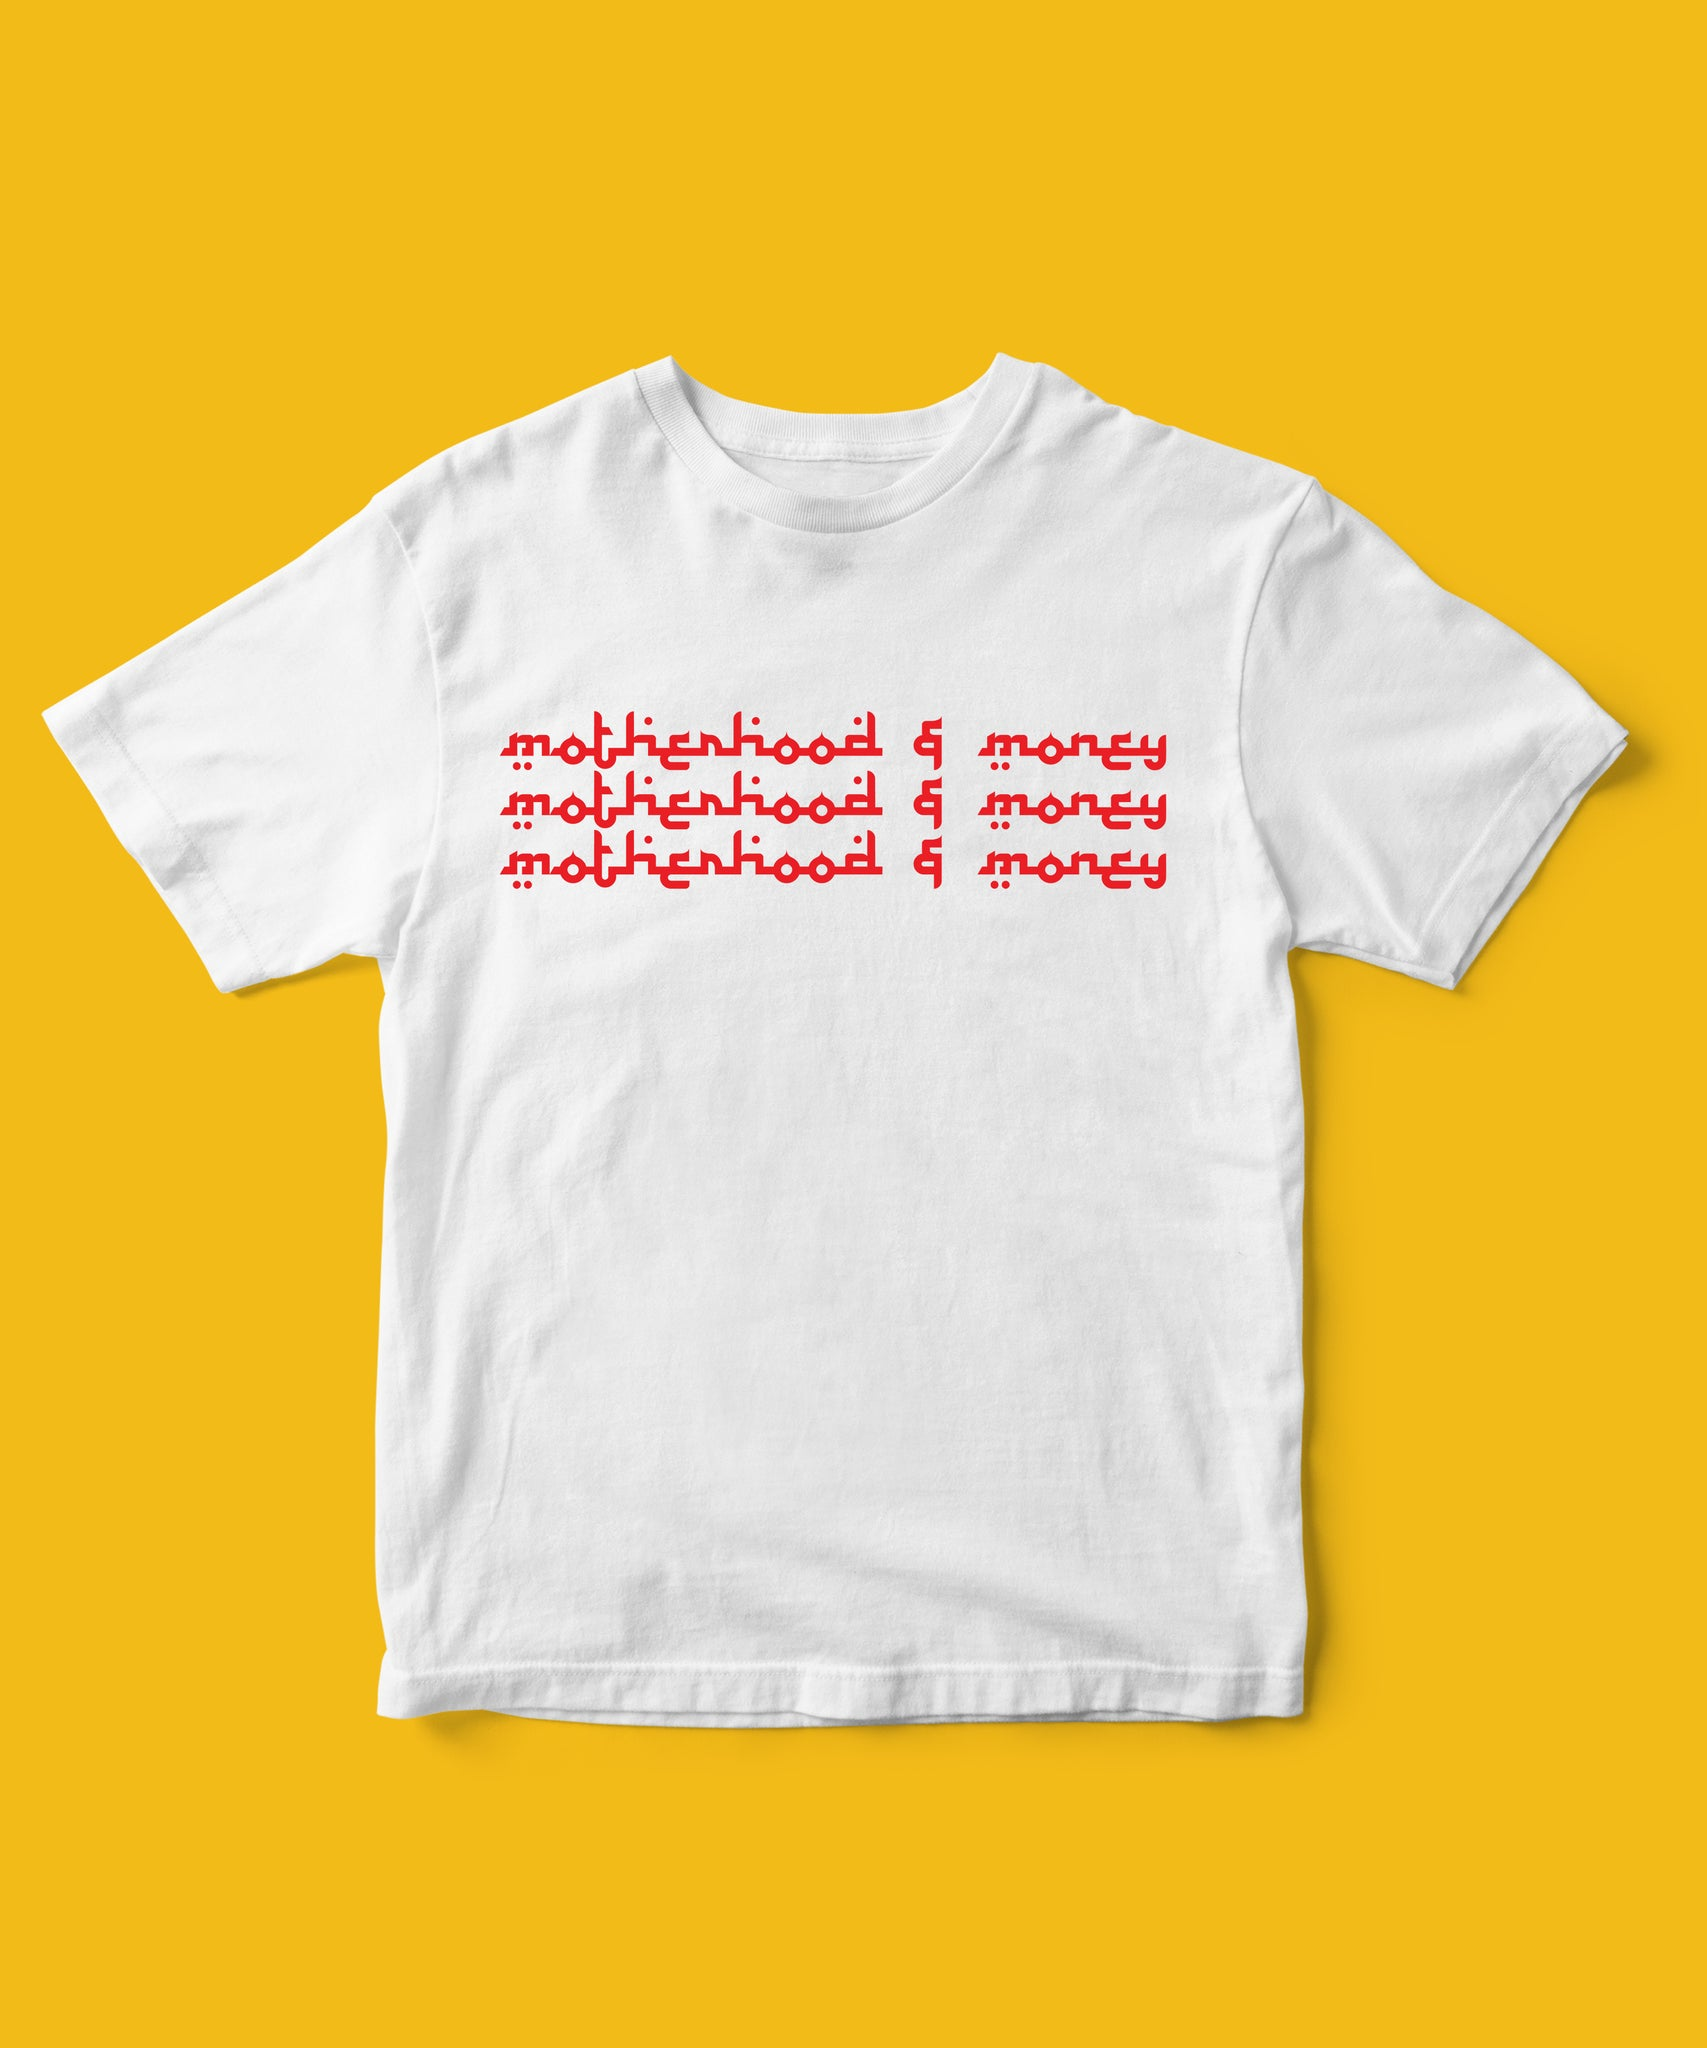 M&M (Motherhood&Money) Tee